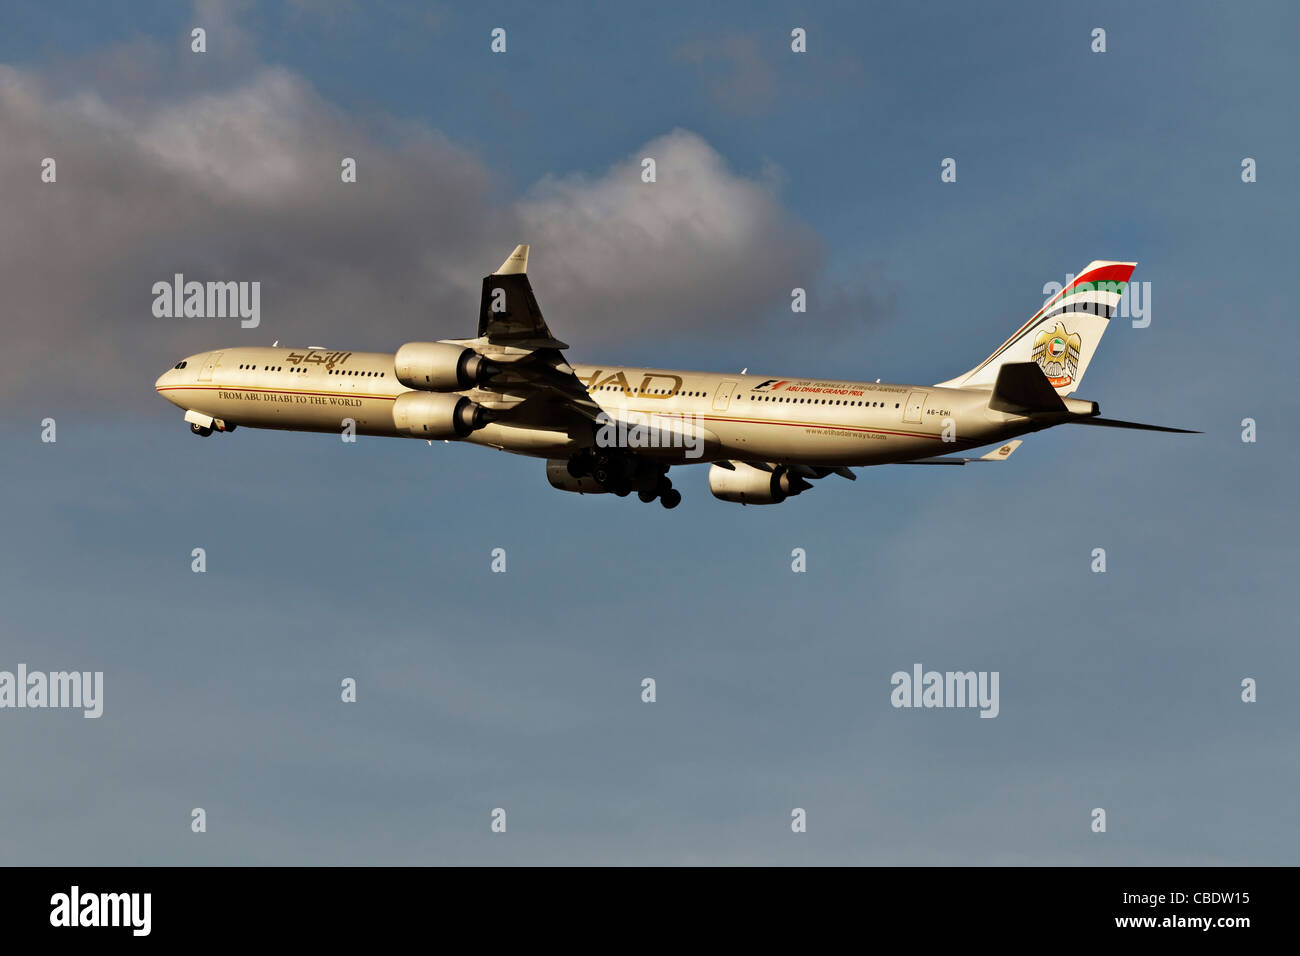 An Airbus A340 of the Abu Dhabi airline Etihad - Stock Image